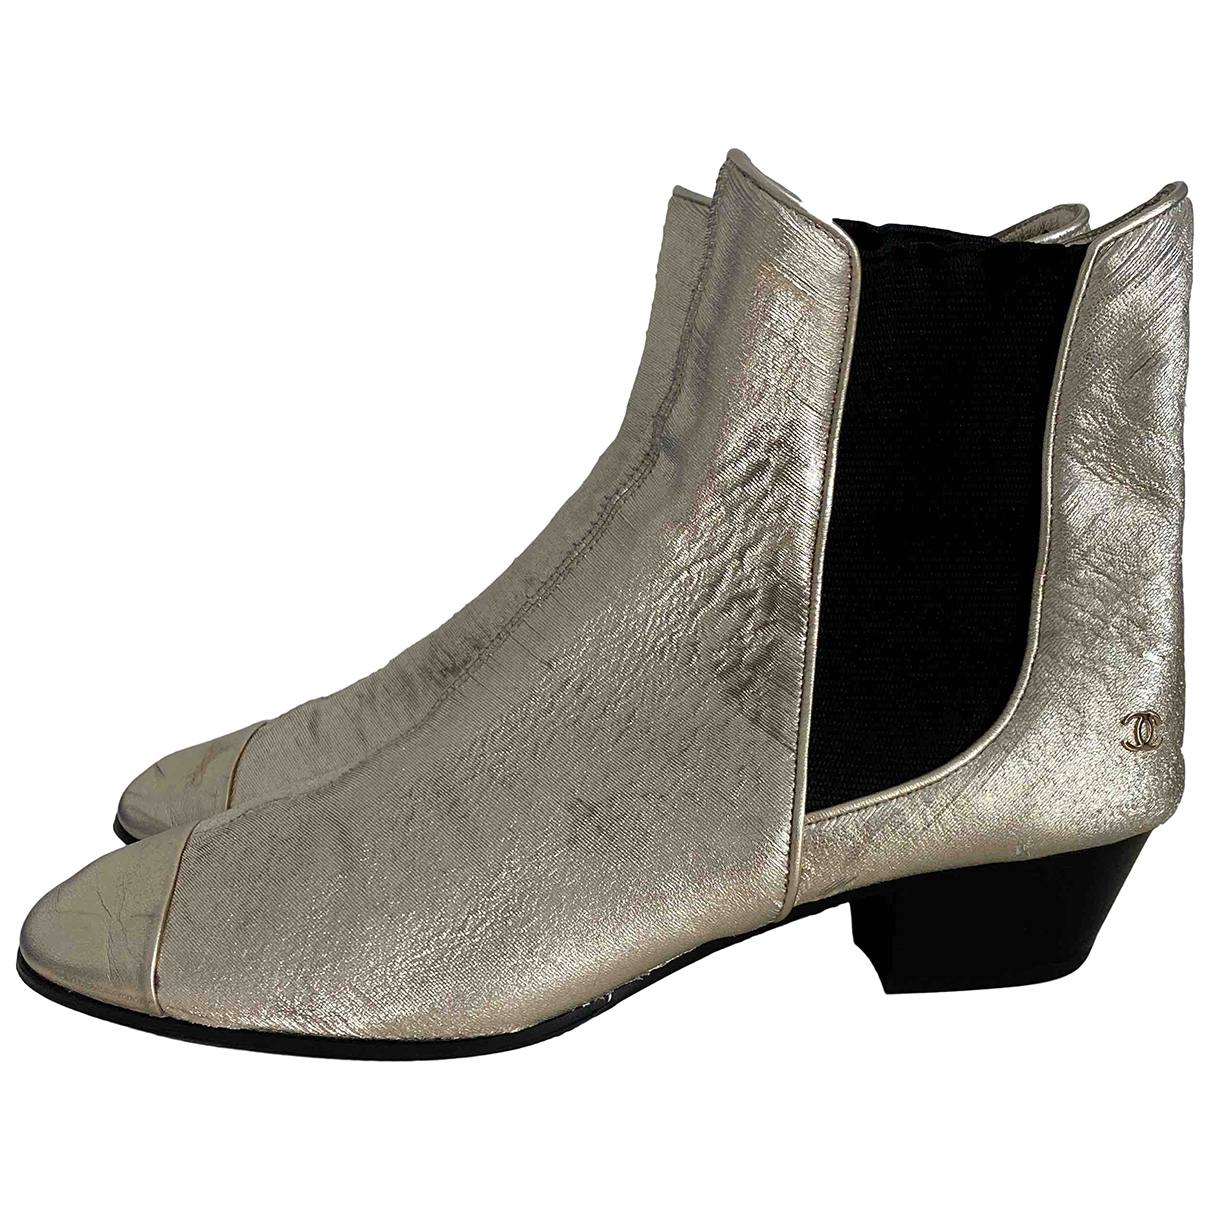 Chanel \N Metallic Leather Ankle boots for Women 37 EU